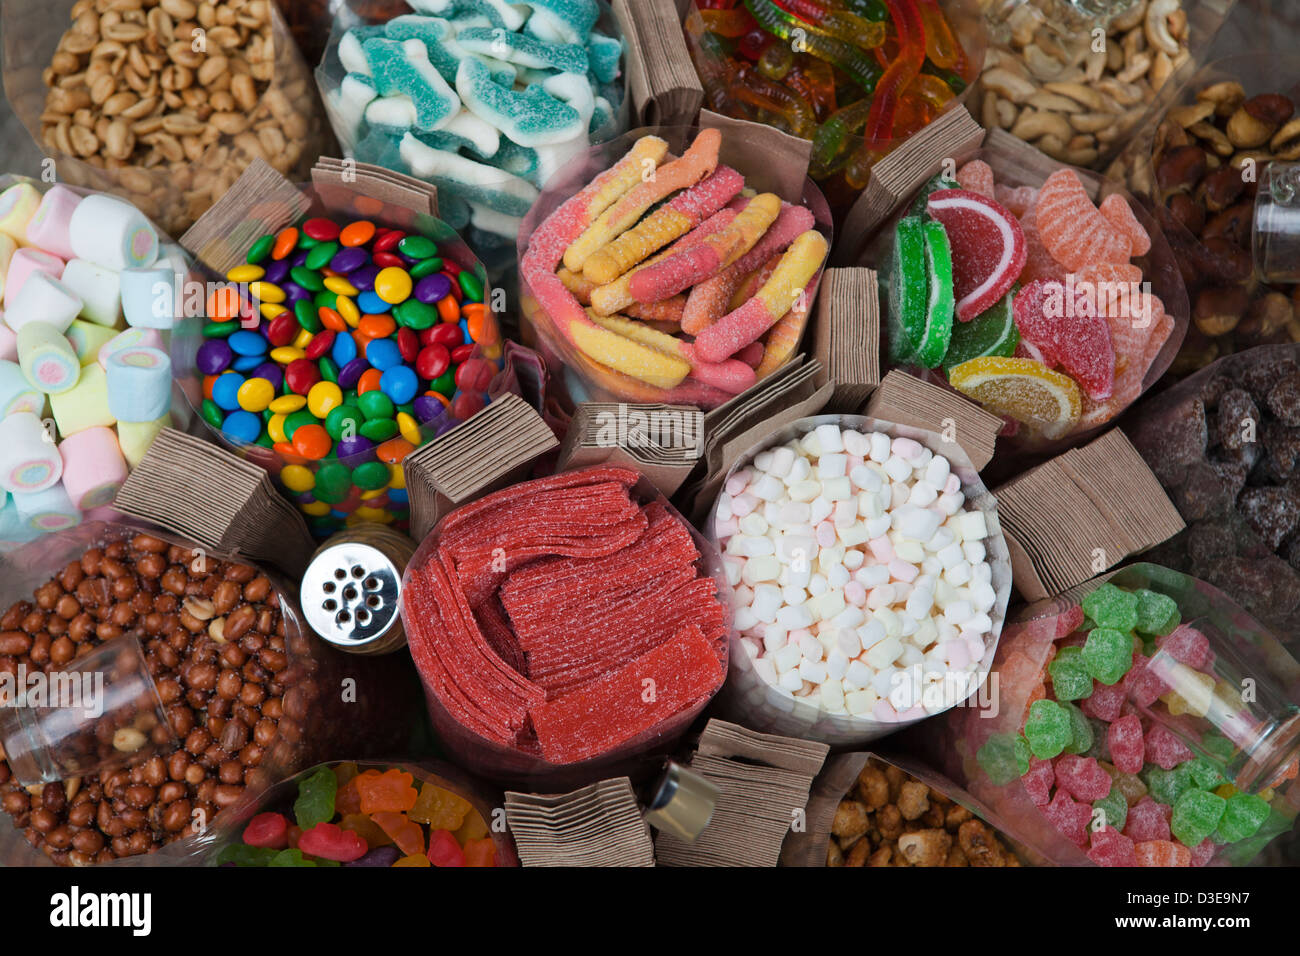 Pinoy candy or Native Filipino Fruit candies  - most are based on fruits, so it is imagined that they are 'healthy'. - Stock Image